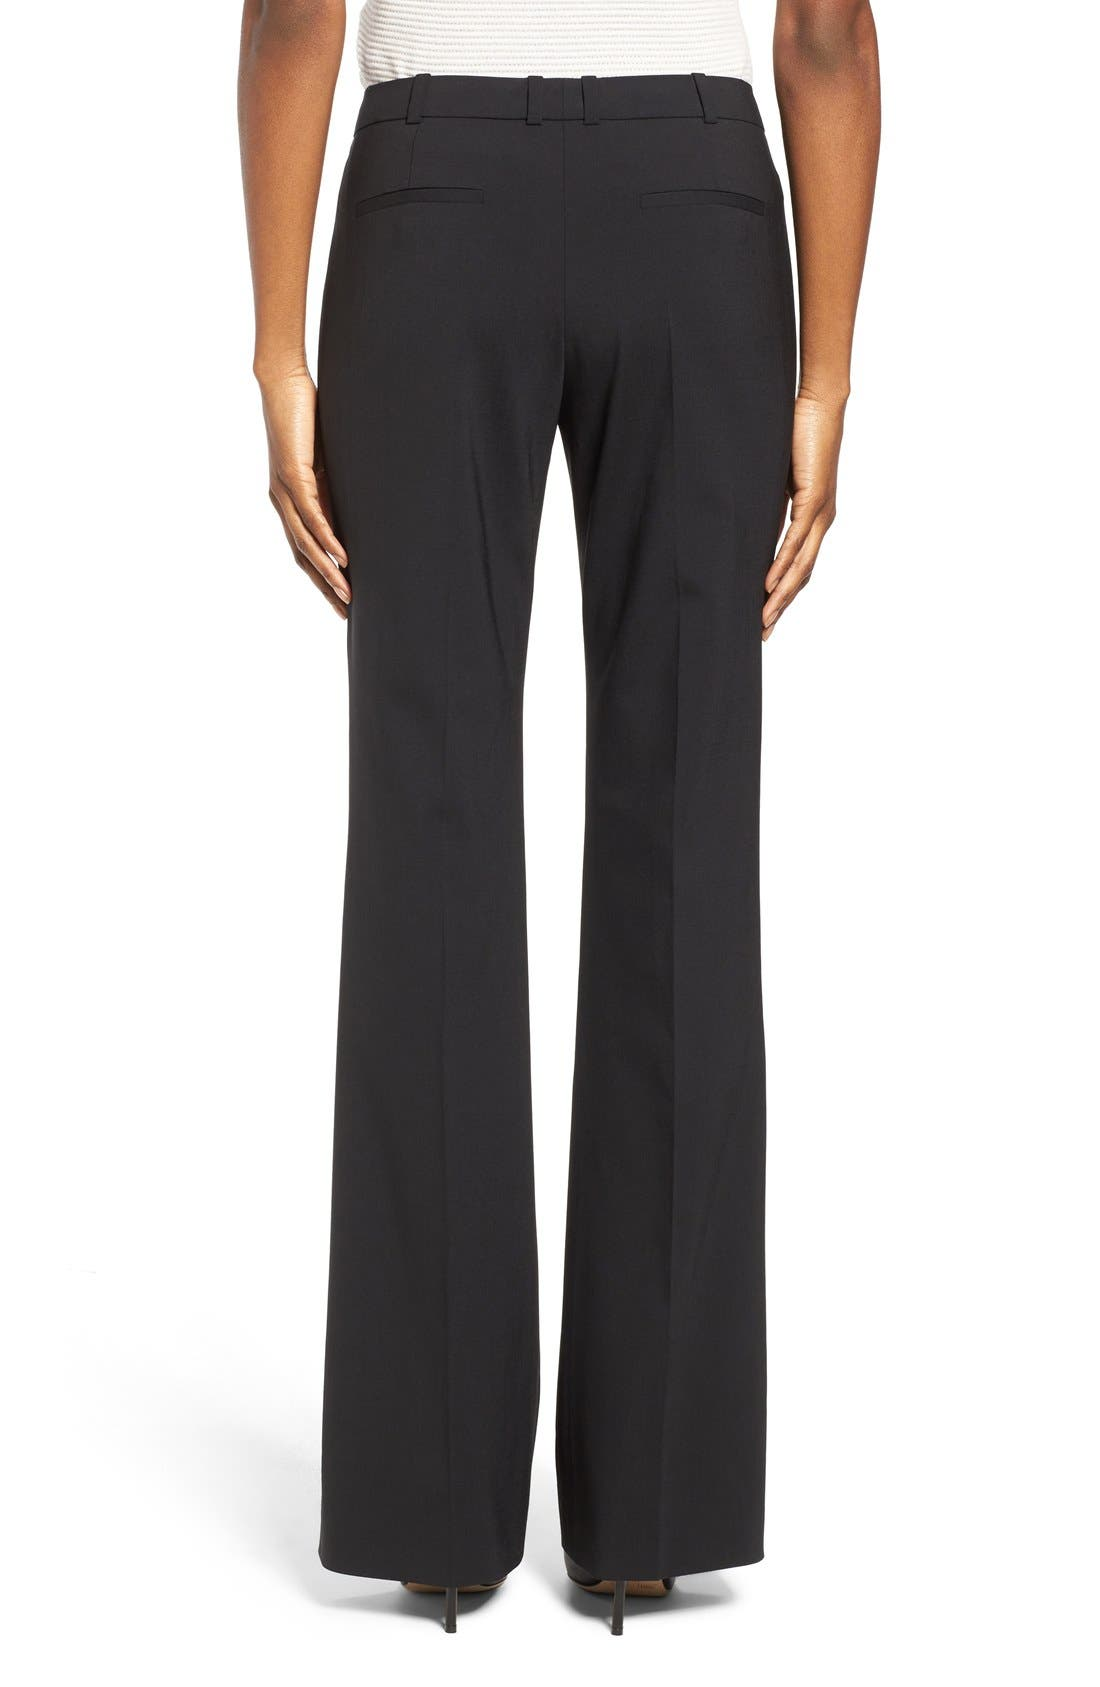 BOSS, Tulea3 Tropical Stretch Wool Trousers, Alternate thumbnail 4, color, BLACK